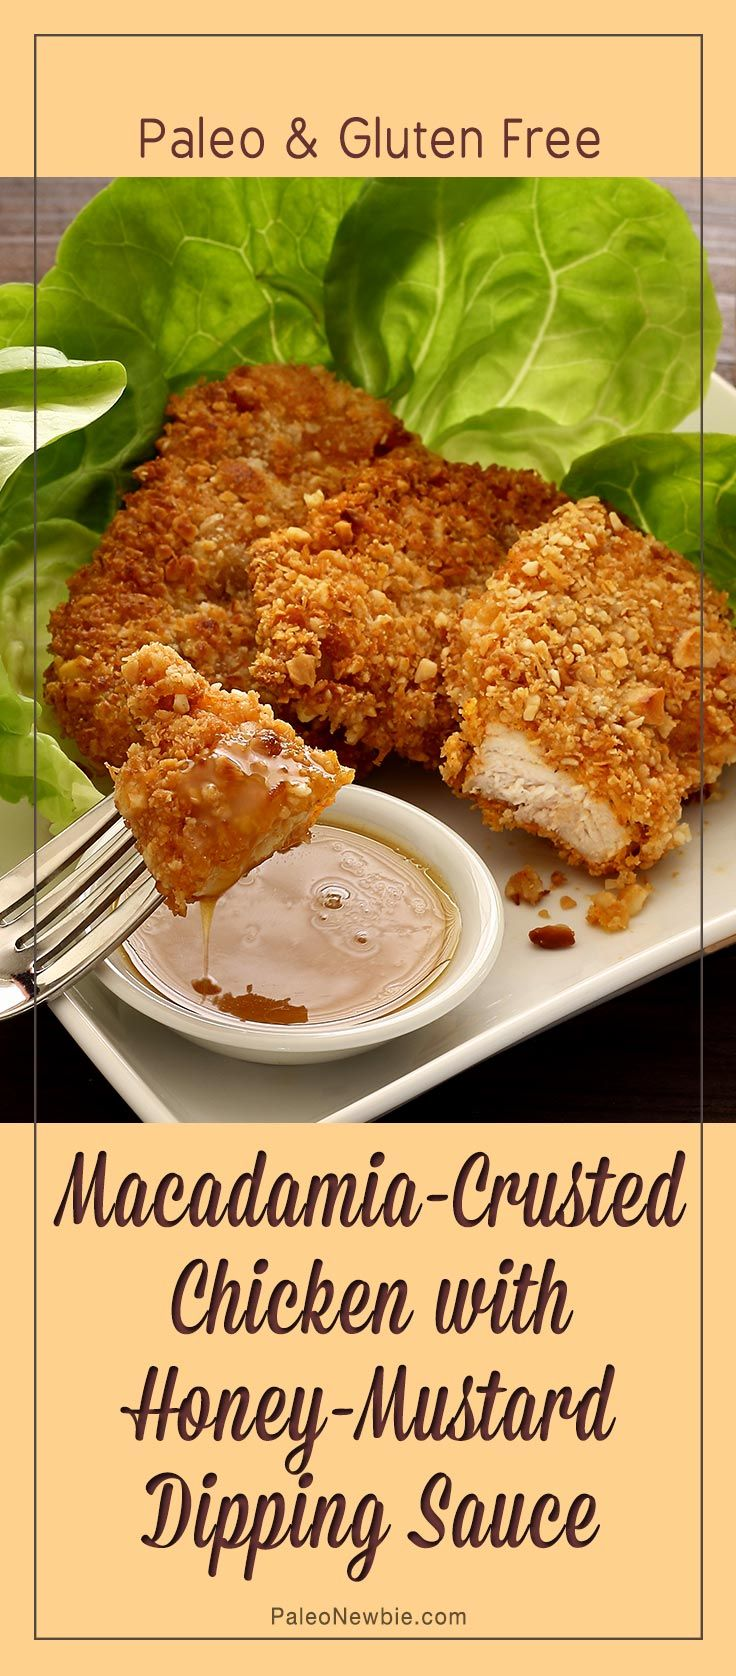 Hot out of the skillet chicken made healthy and simple with a crunchy macadamia crust and a super-easy honey-mustard sauce. #paleo #glutenfree